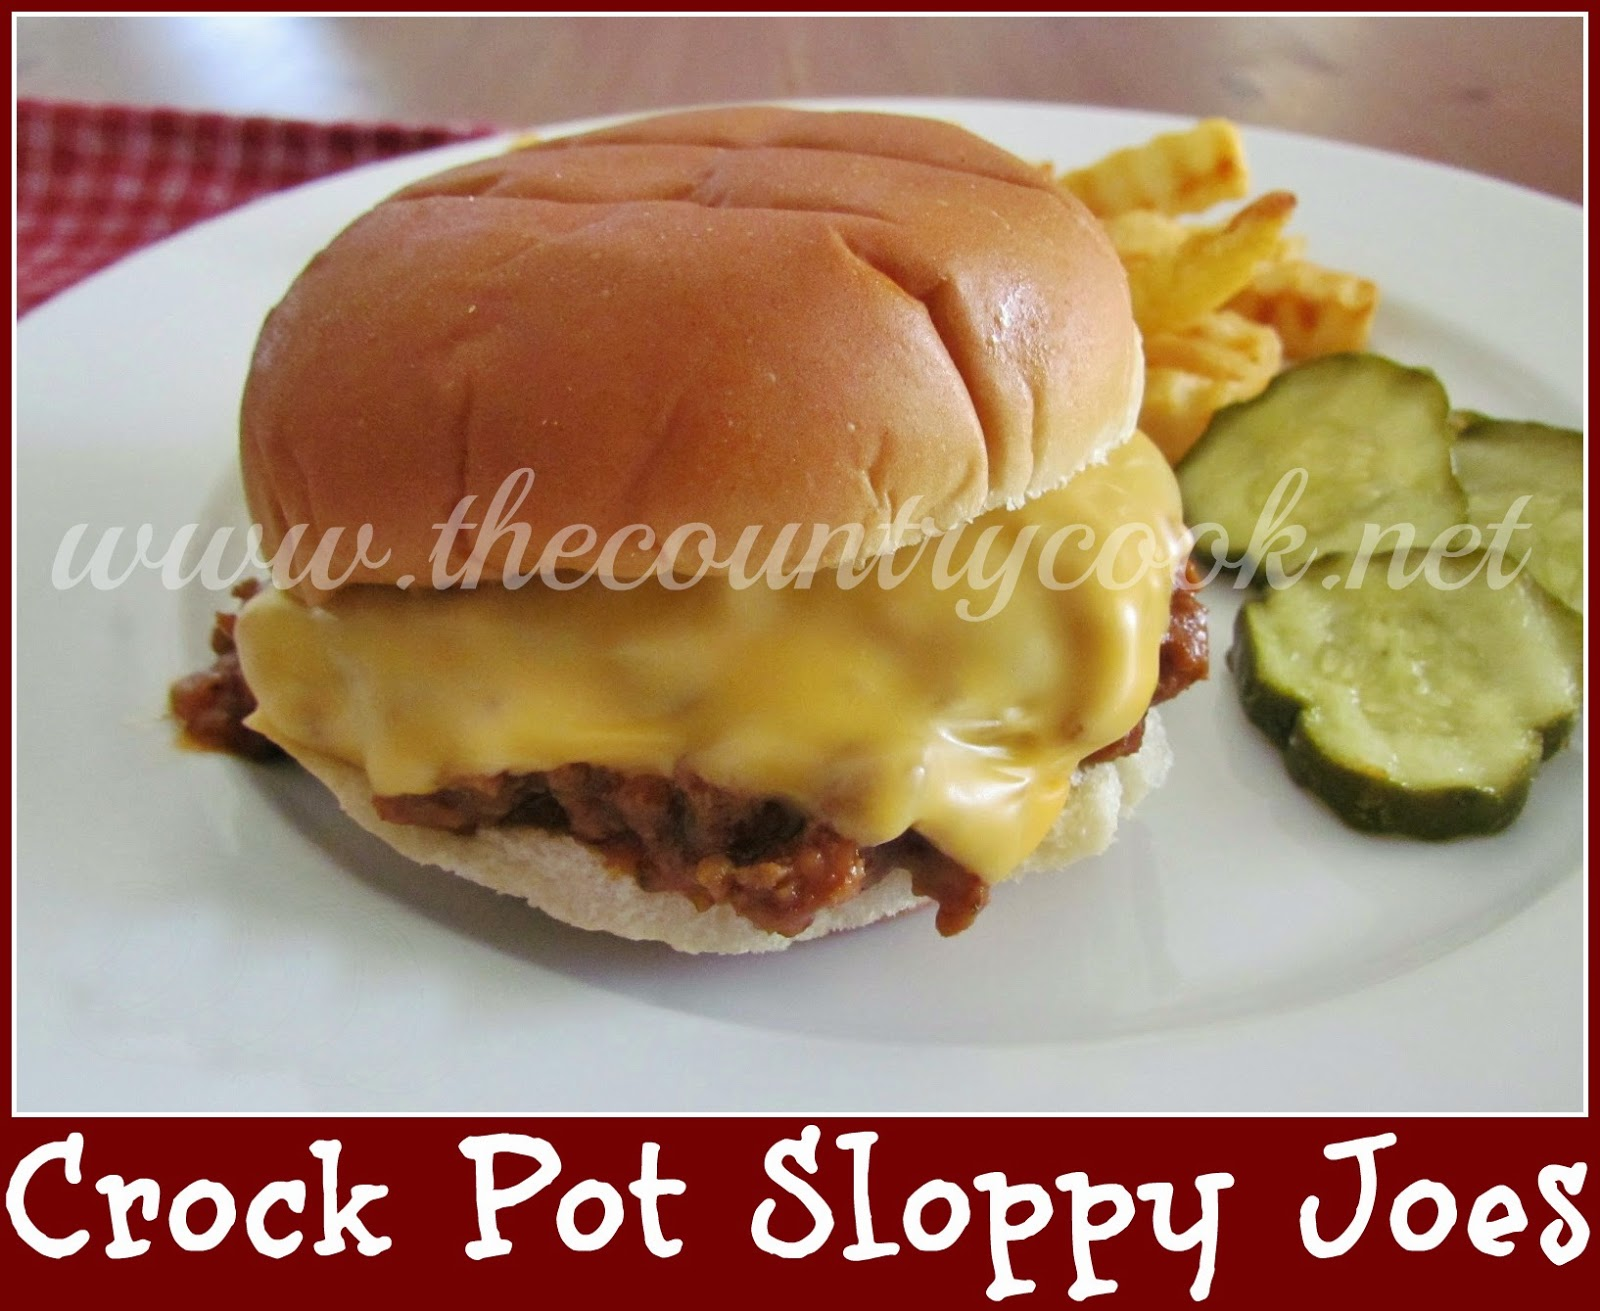 The Country Cook: Back to School Crock Pot Recipes